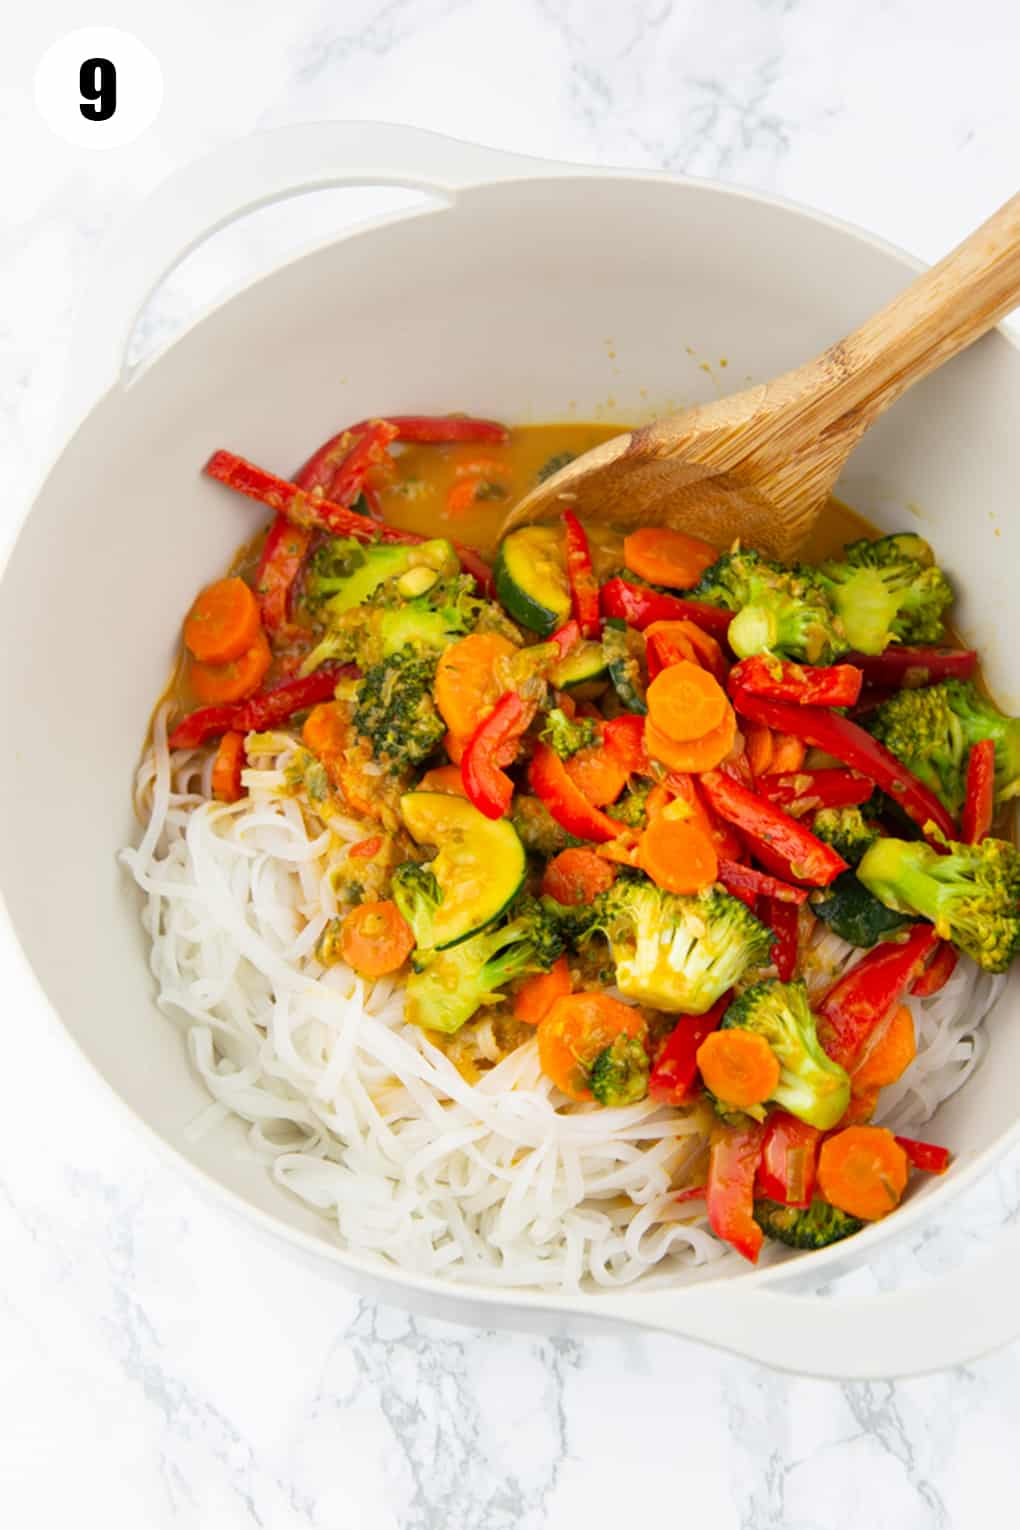 sautéed vegetables and rice noodles on a large bowl with a wooden spoon on a marble countertop